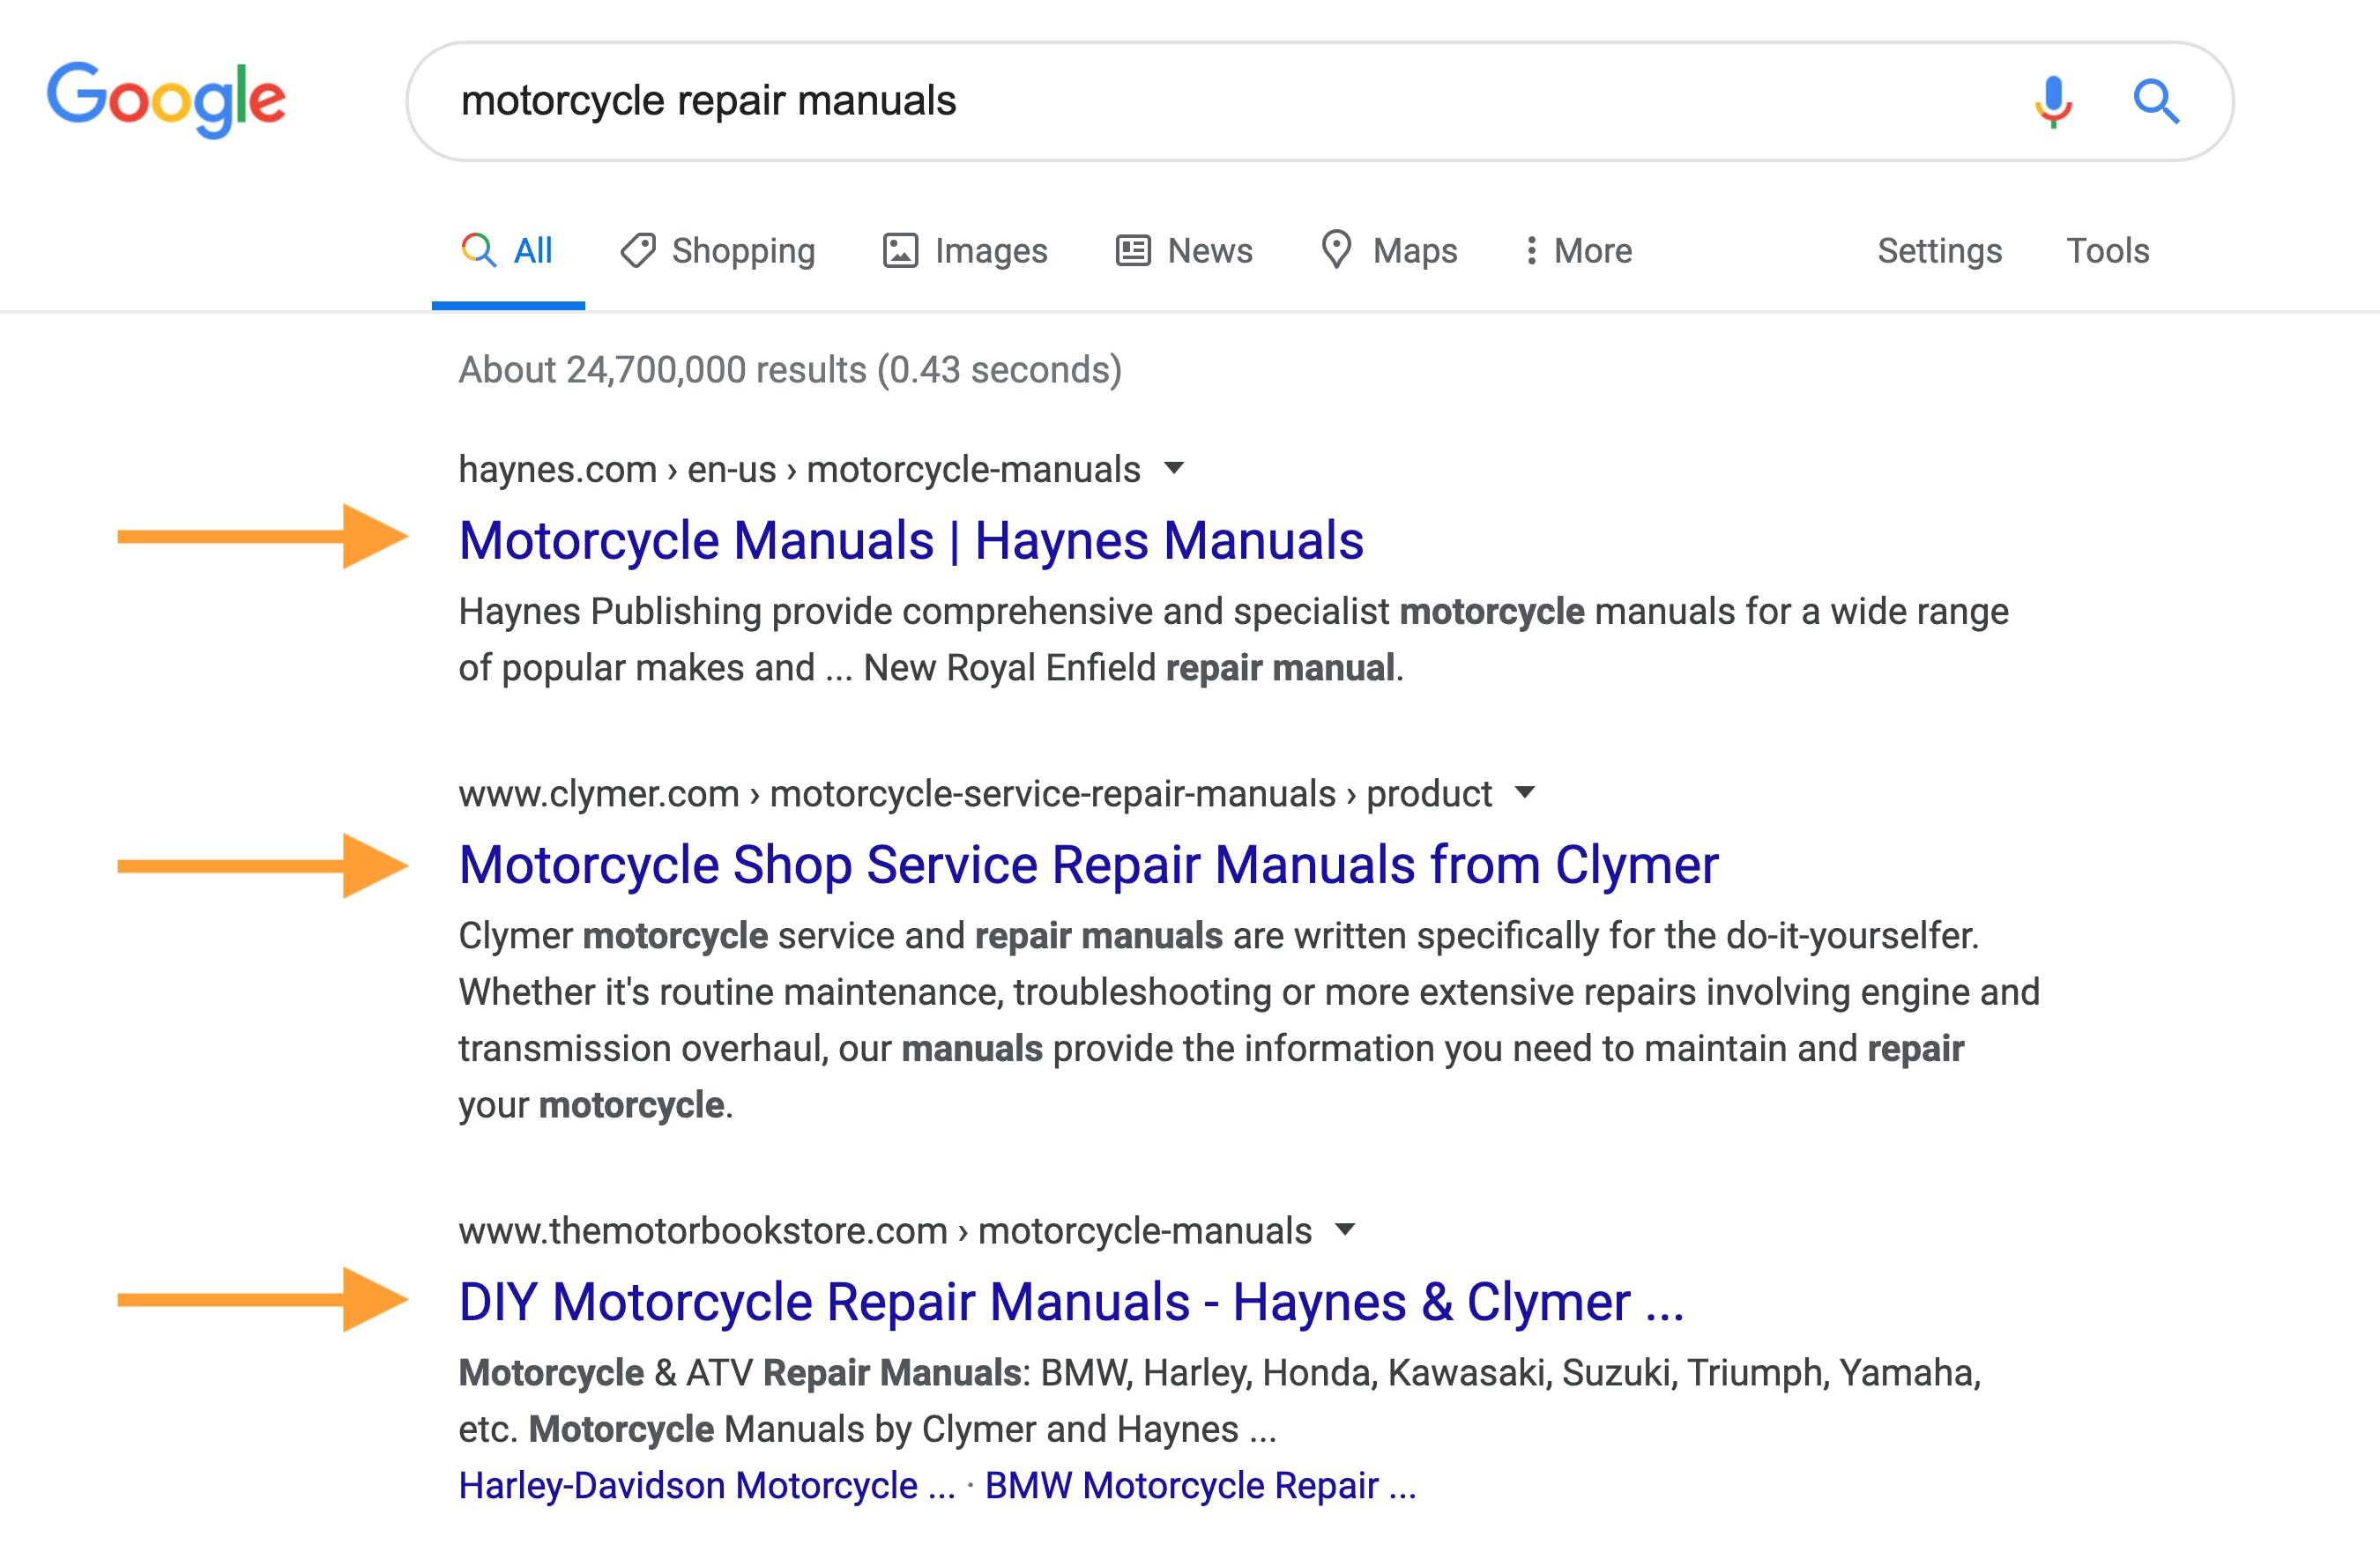 Seed keywords from Google SERPs